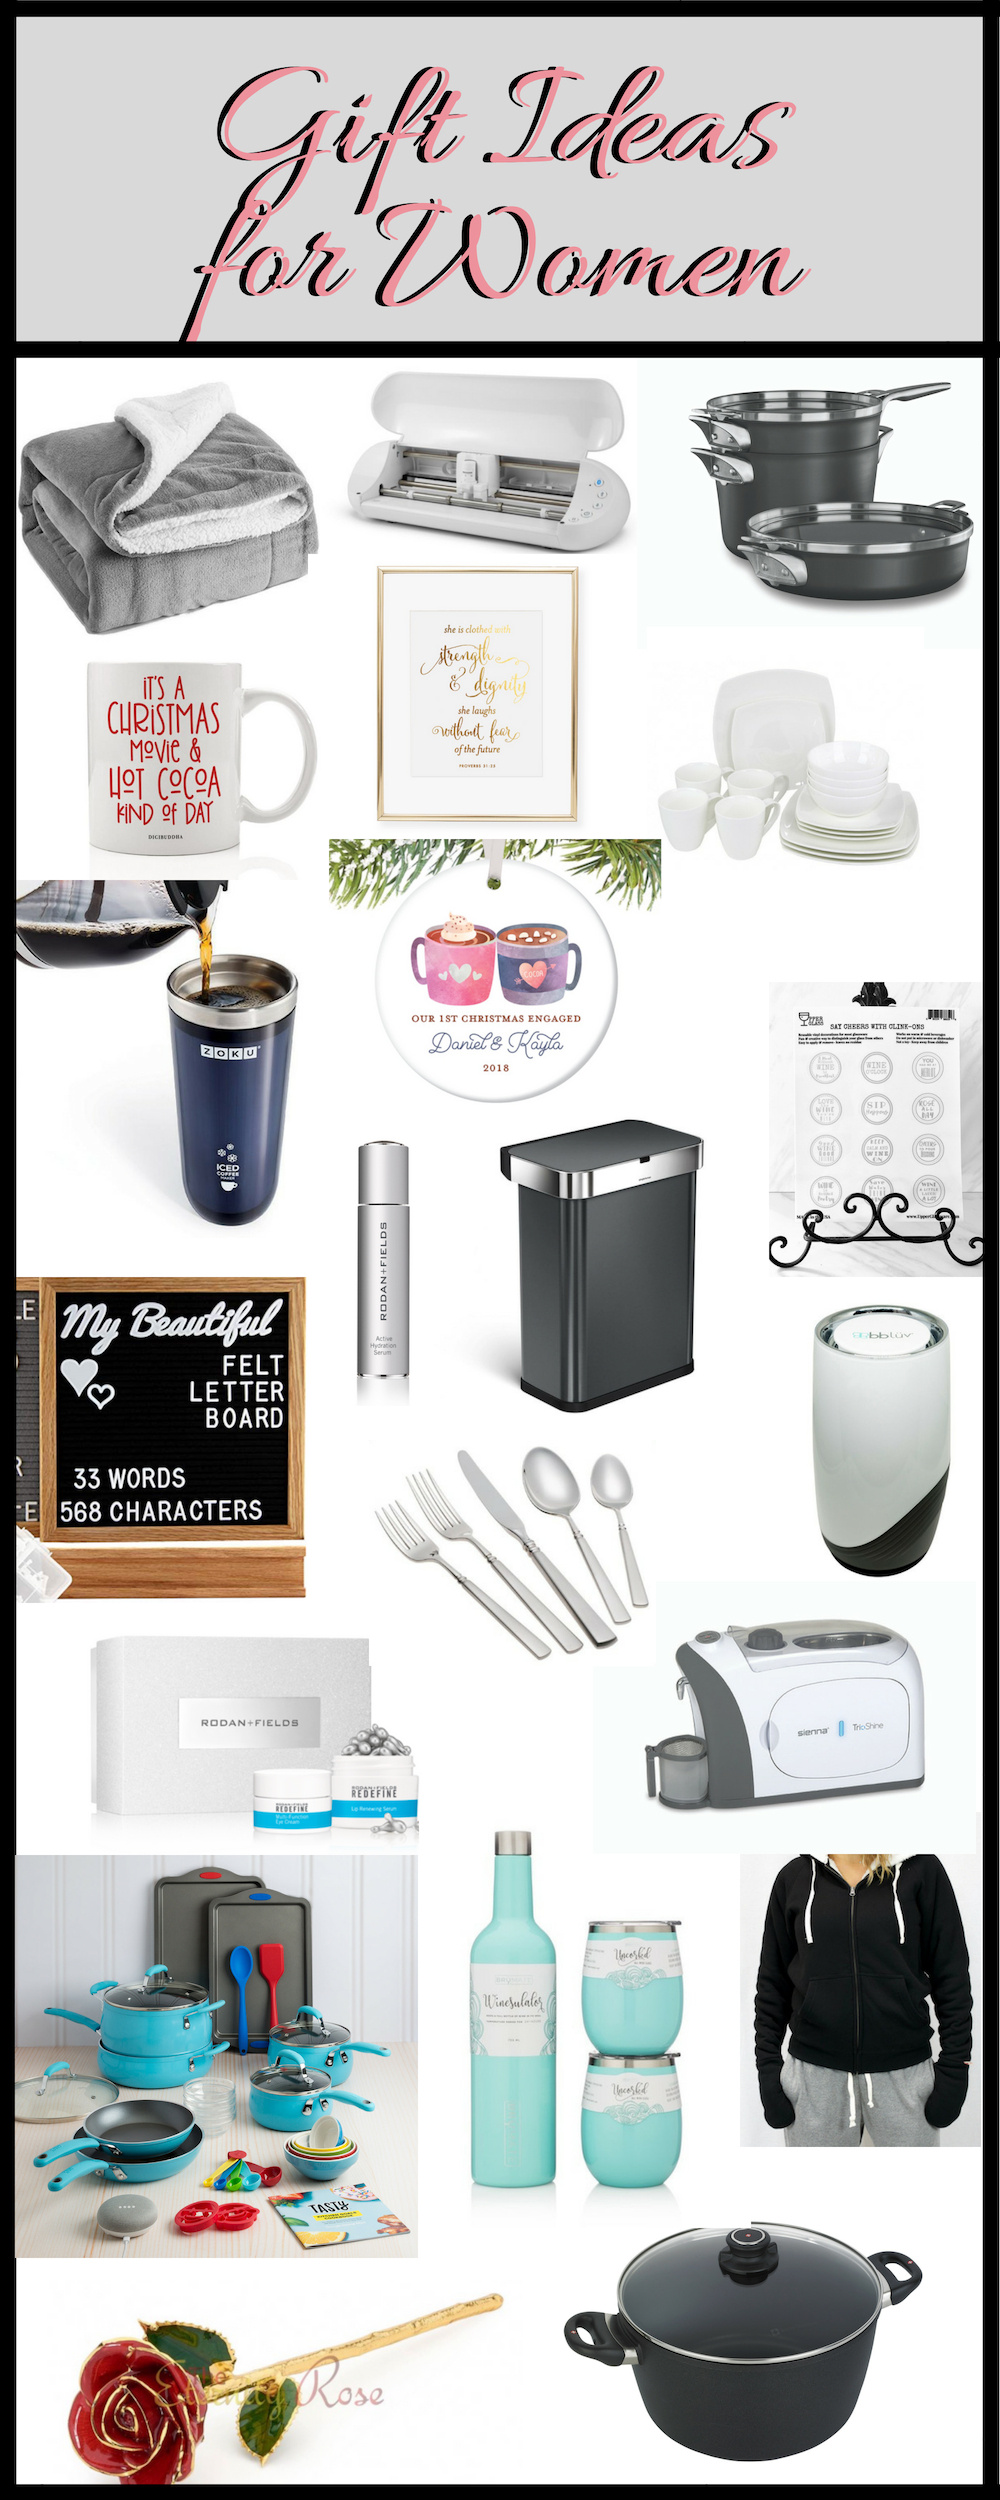 Gift Ideas for Her. Holiday Gift Guide for Women. Here are some great gift ideas for her. Gifts for Mom, Gifts for Grandma, Gifts for Sister, Gifts for best friend.